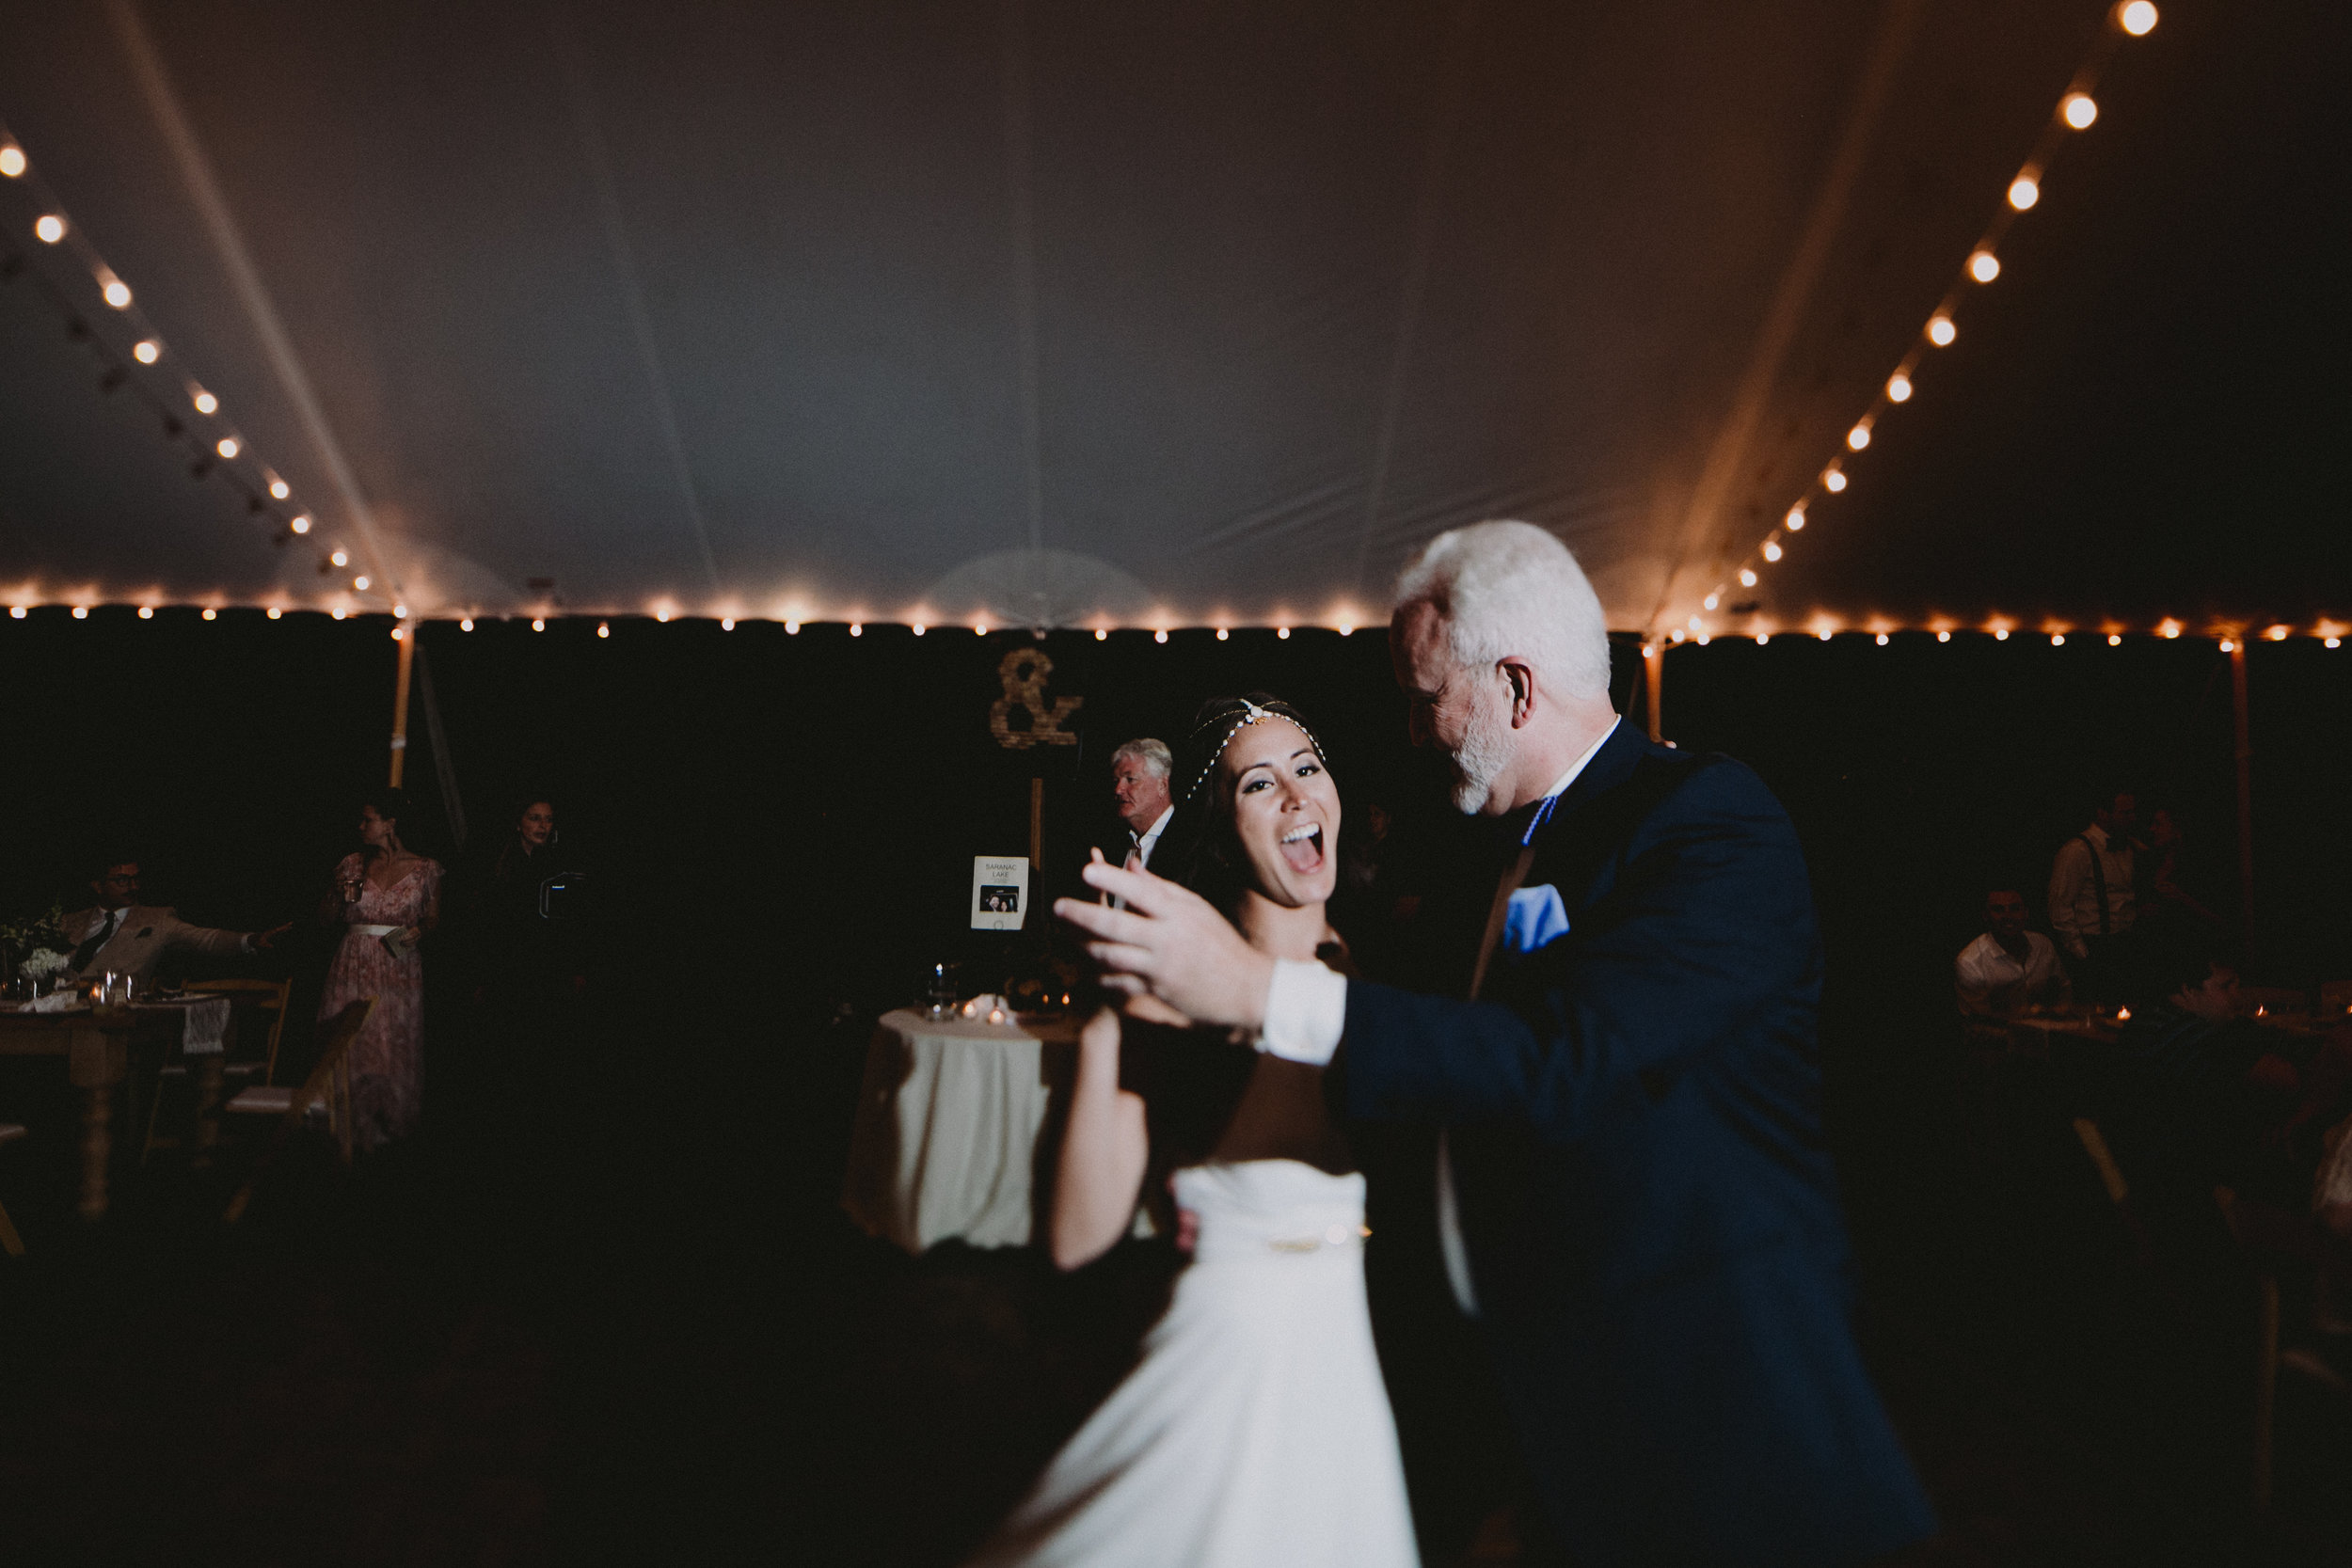 AmpersandBayResortWeddingChellise_Michael_Photography_Chellise_Michael-601.jpg